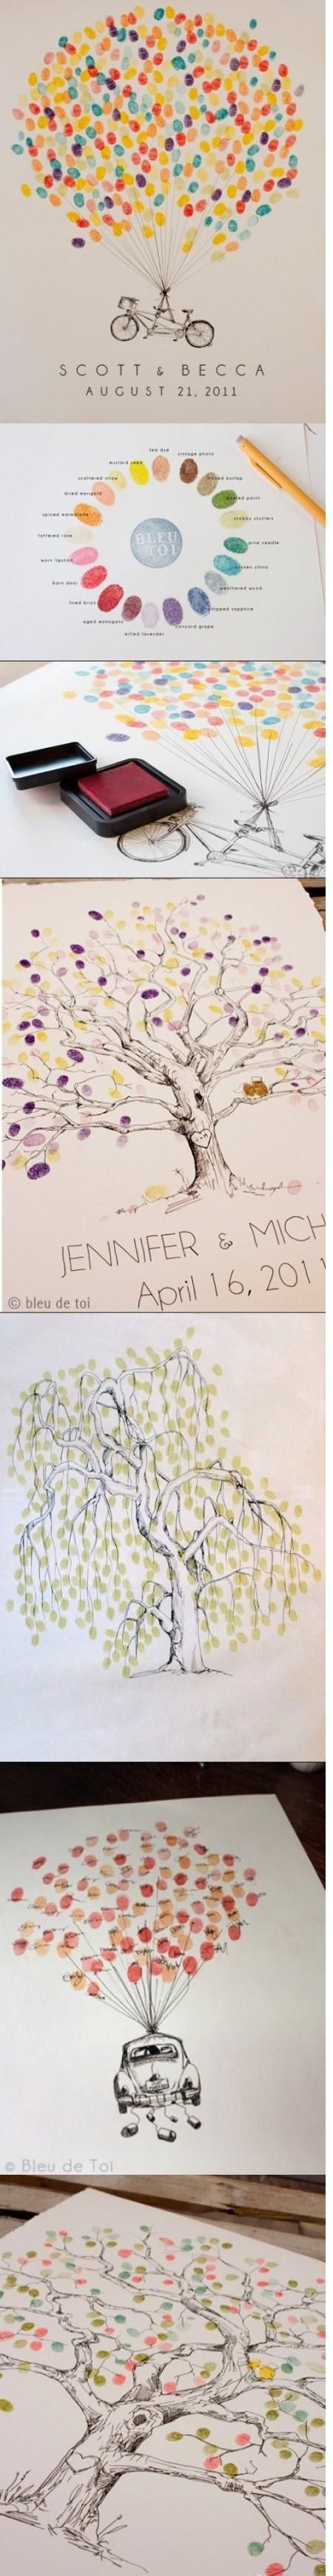 "Love these thumbprint ""guestbooks"""